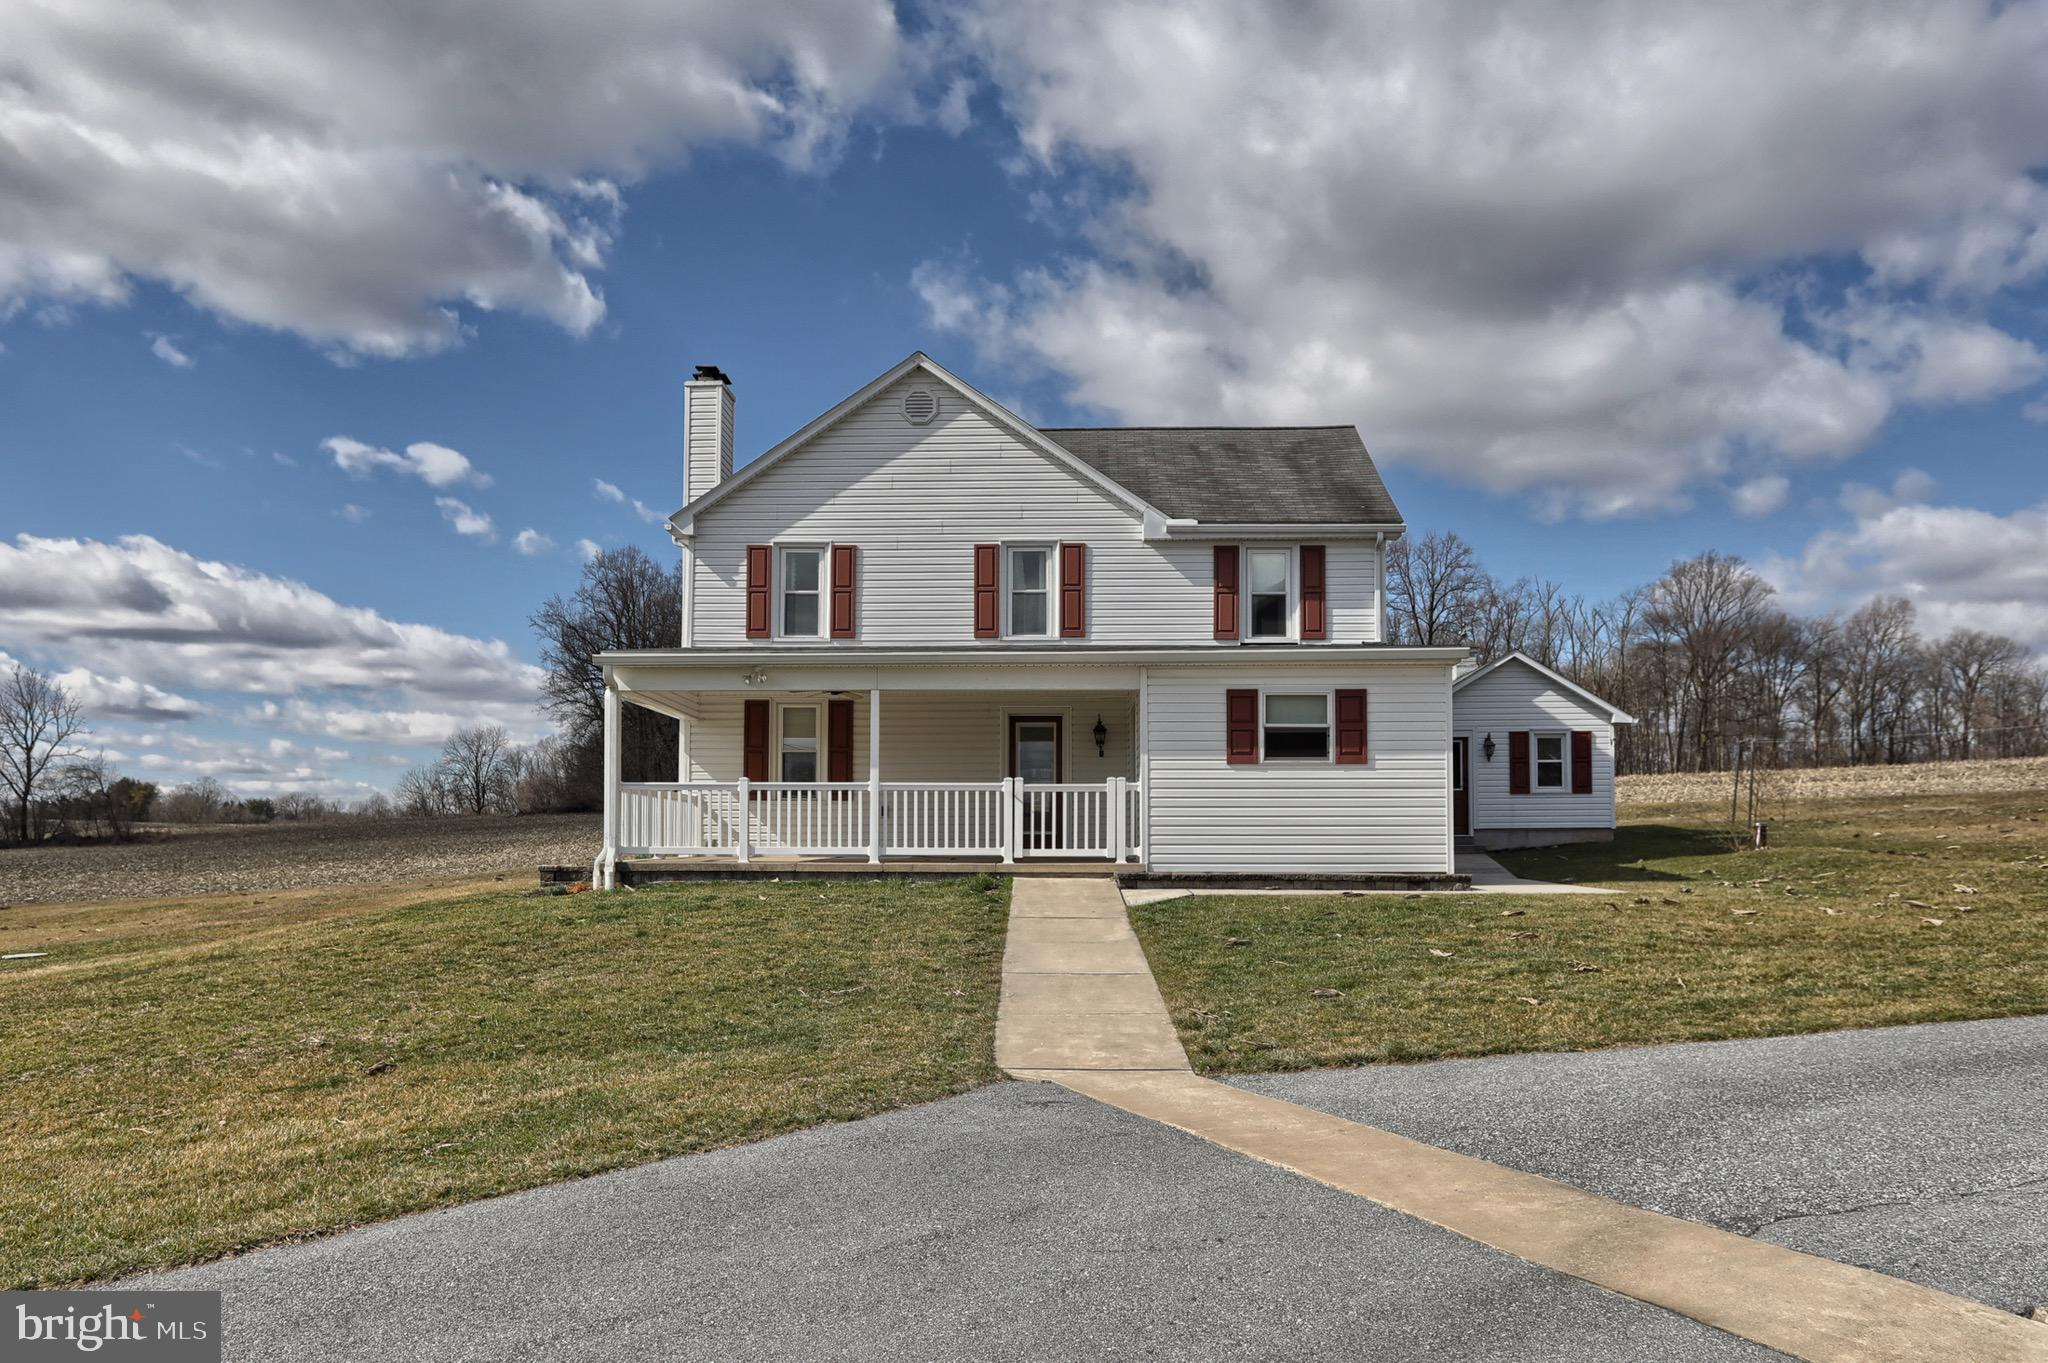 102 DEER LANE, PALMYRA, PA 17078